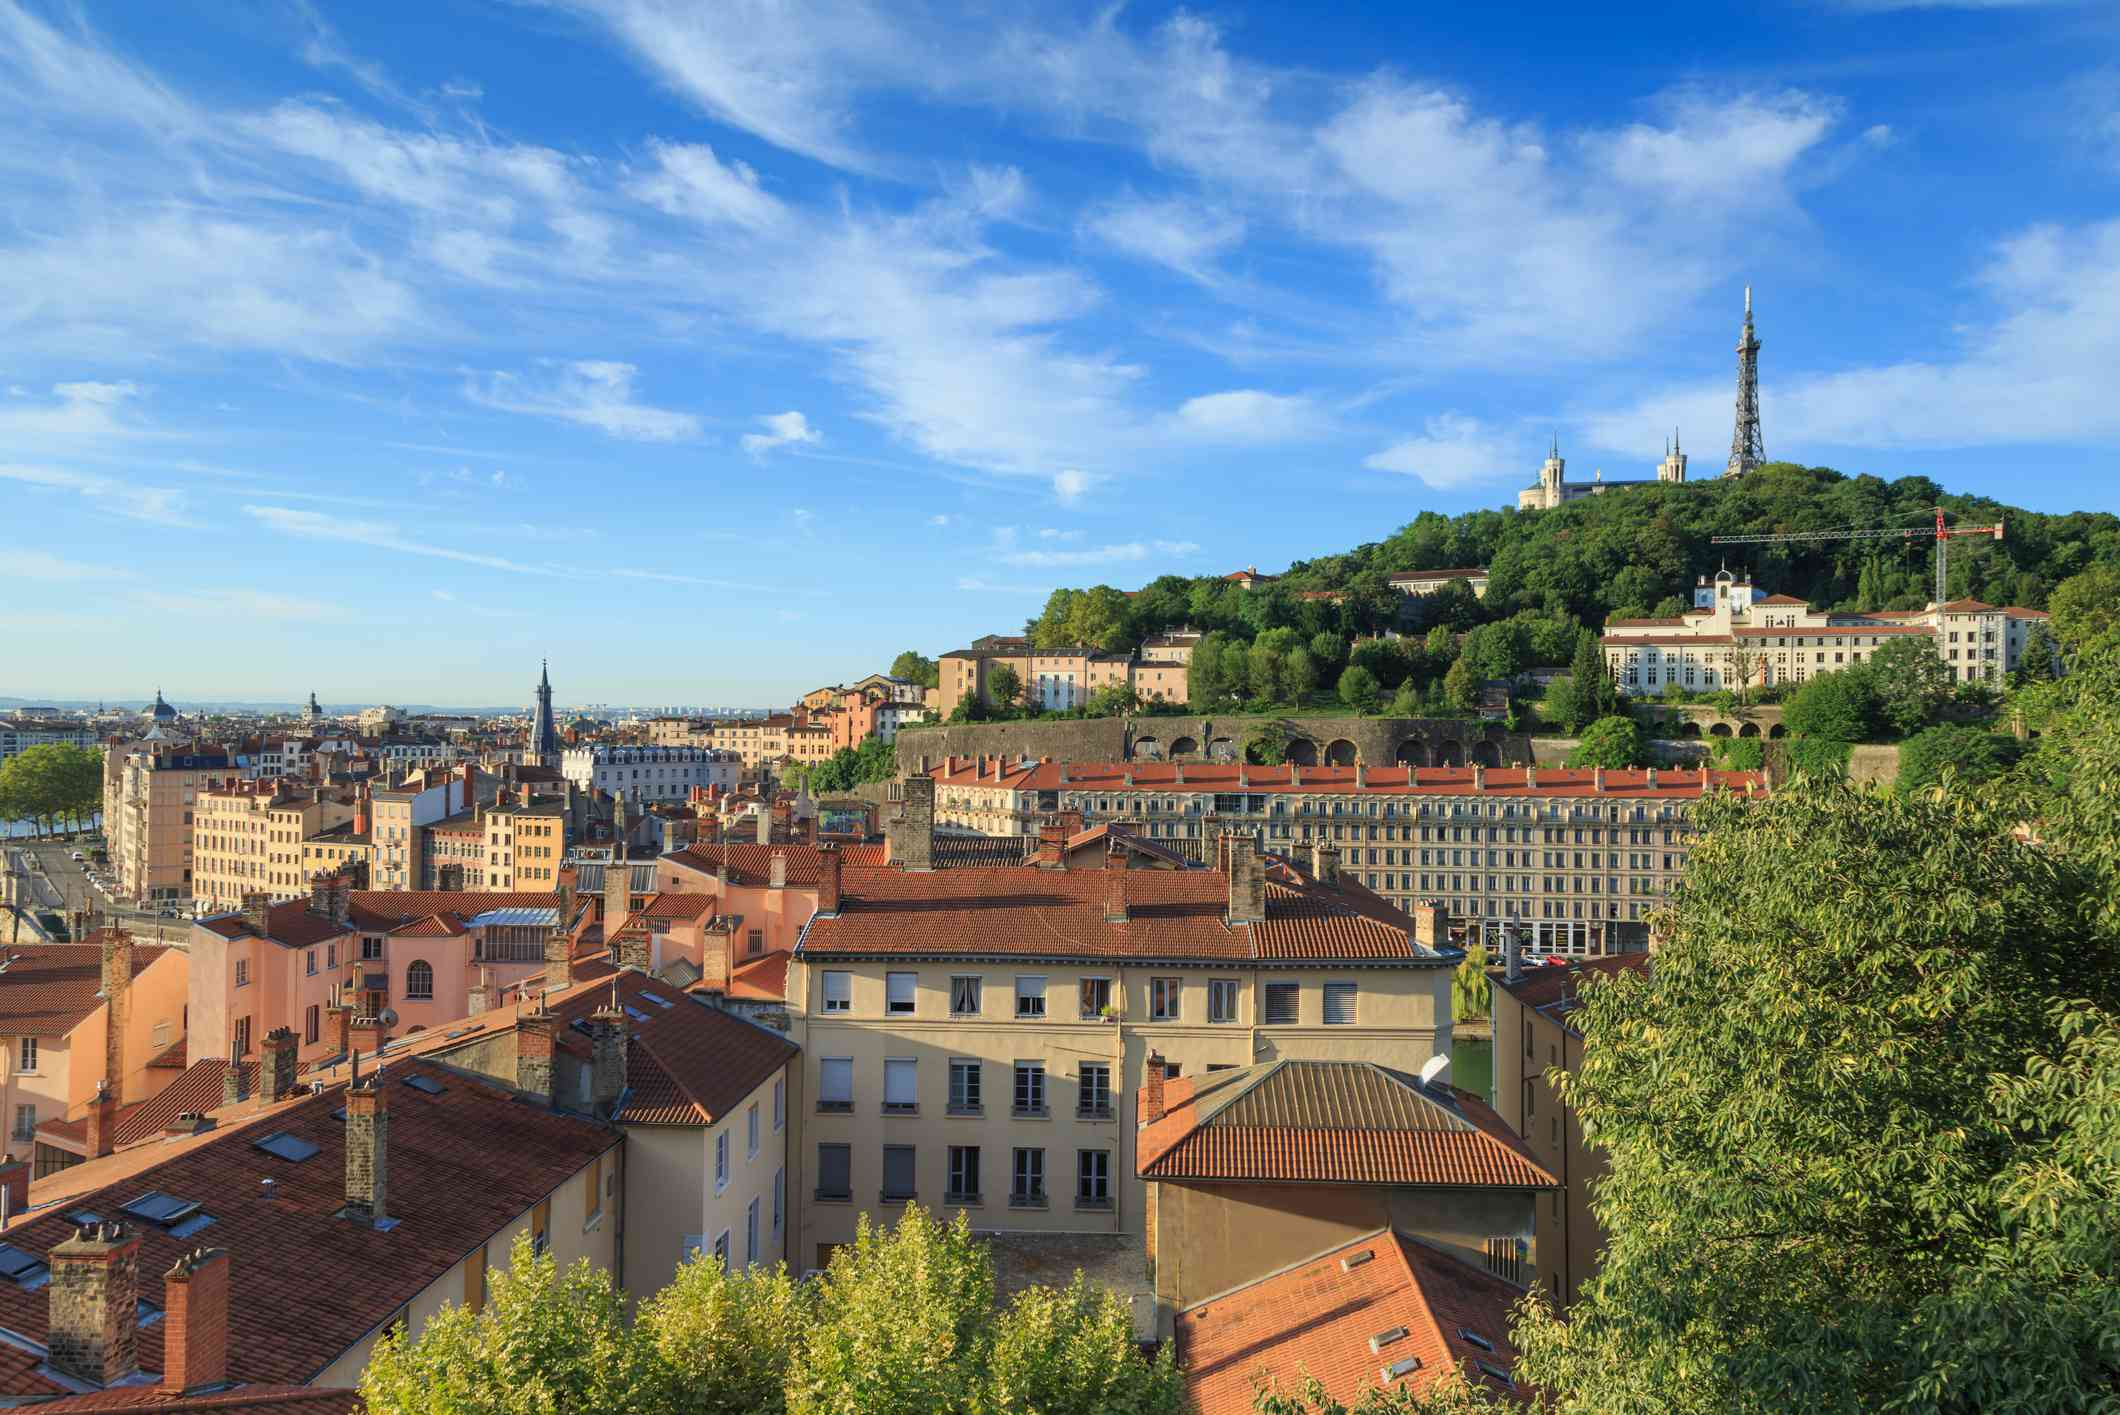 Summer view over Vieux Lyon, with famous cathedral Fourviere, and Croix Rousse in the city of Lyon, France.